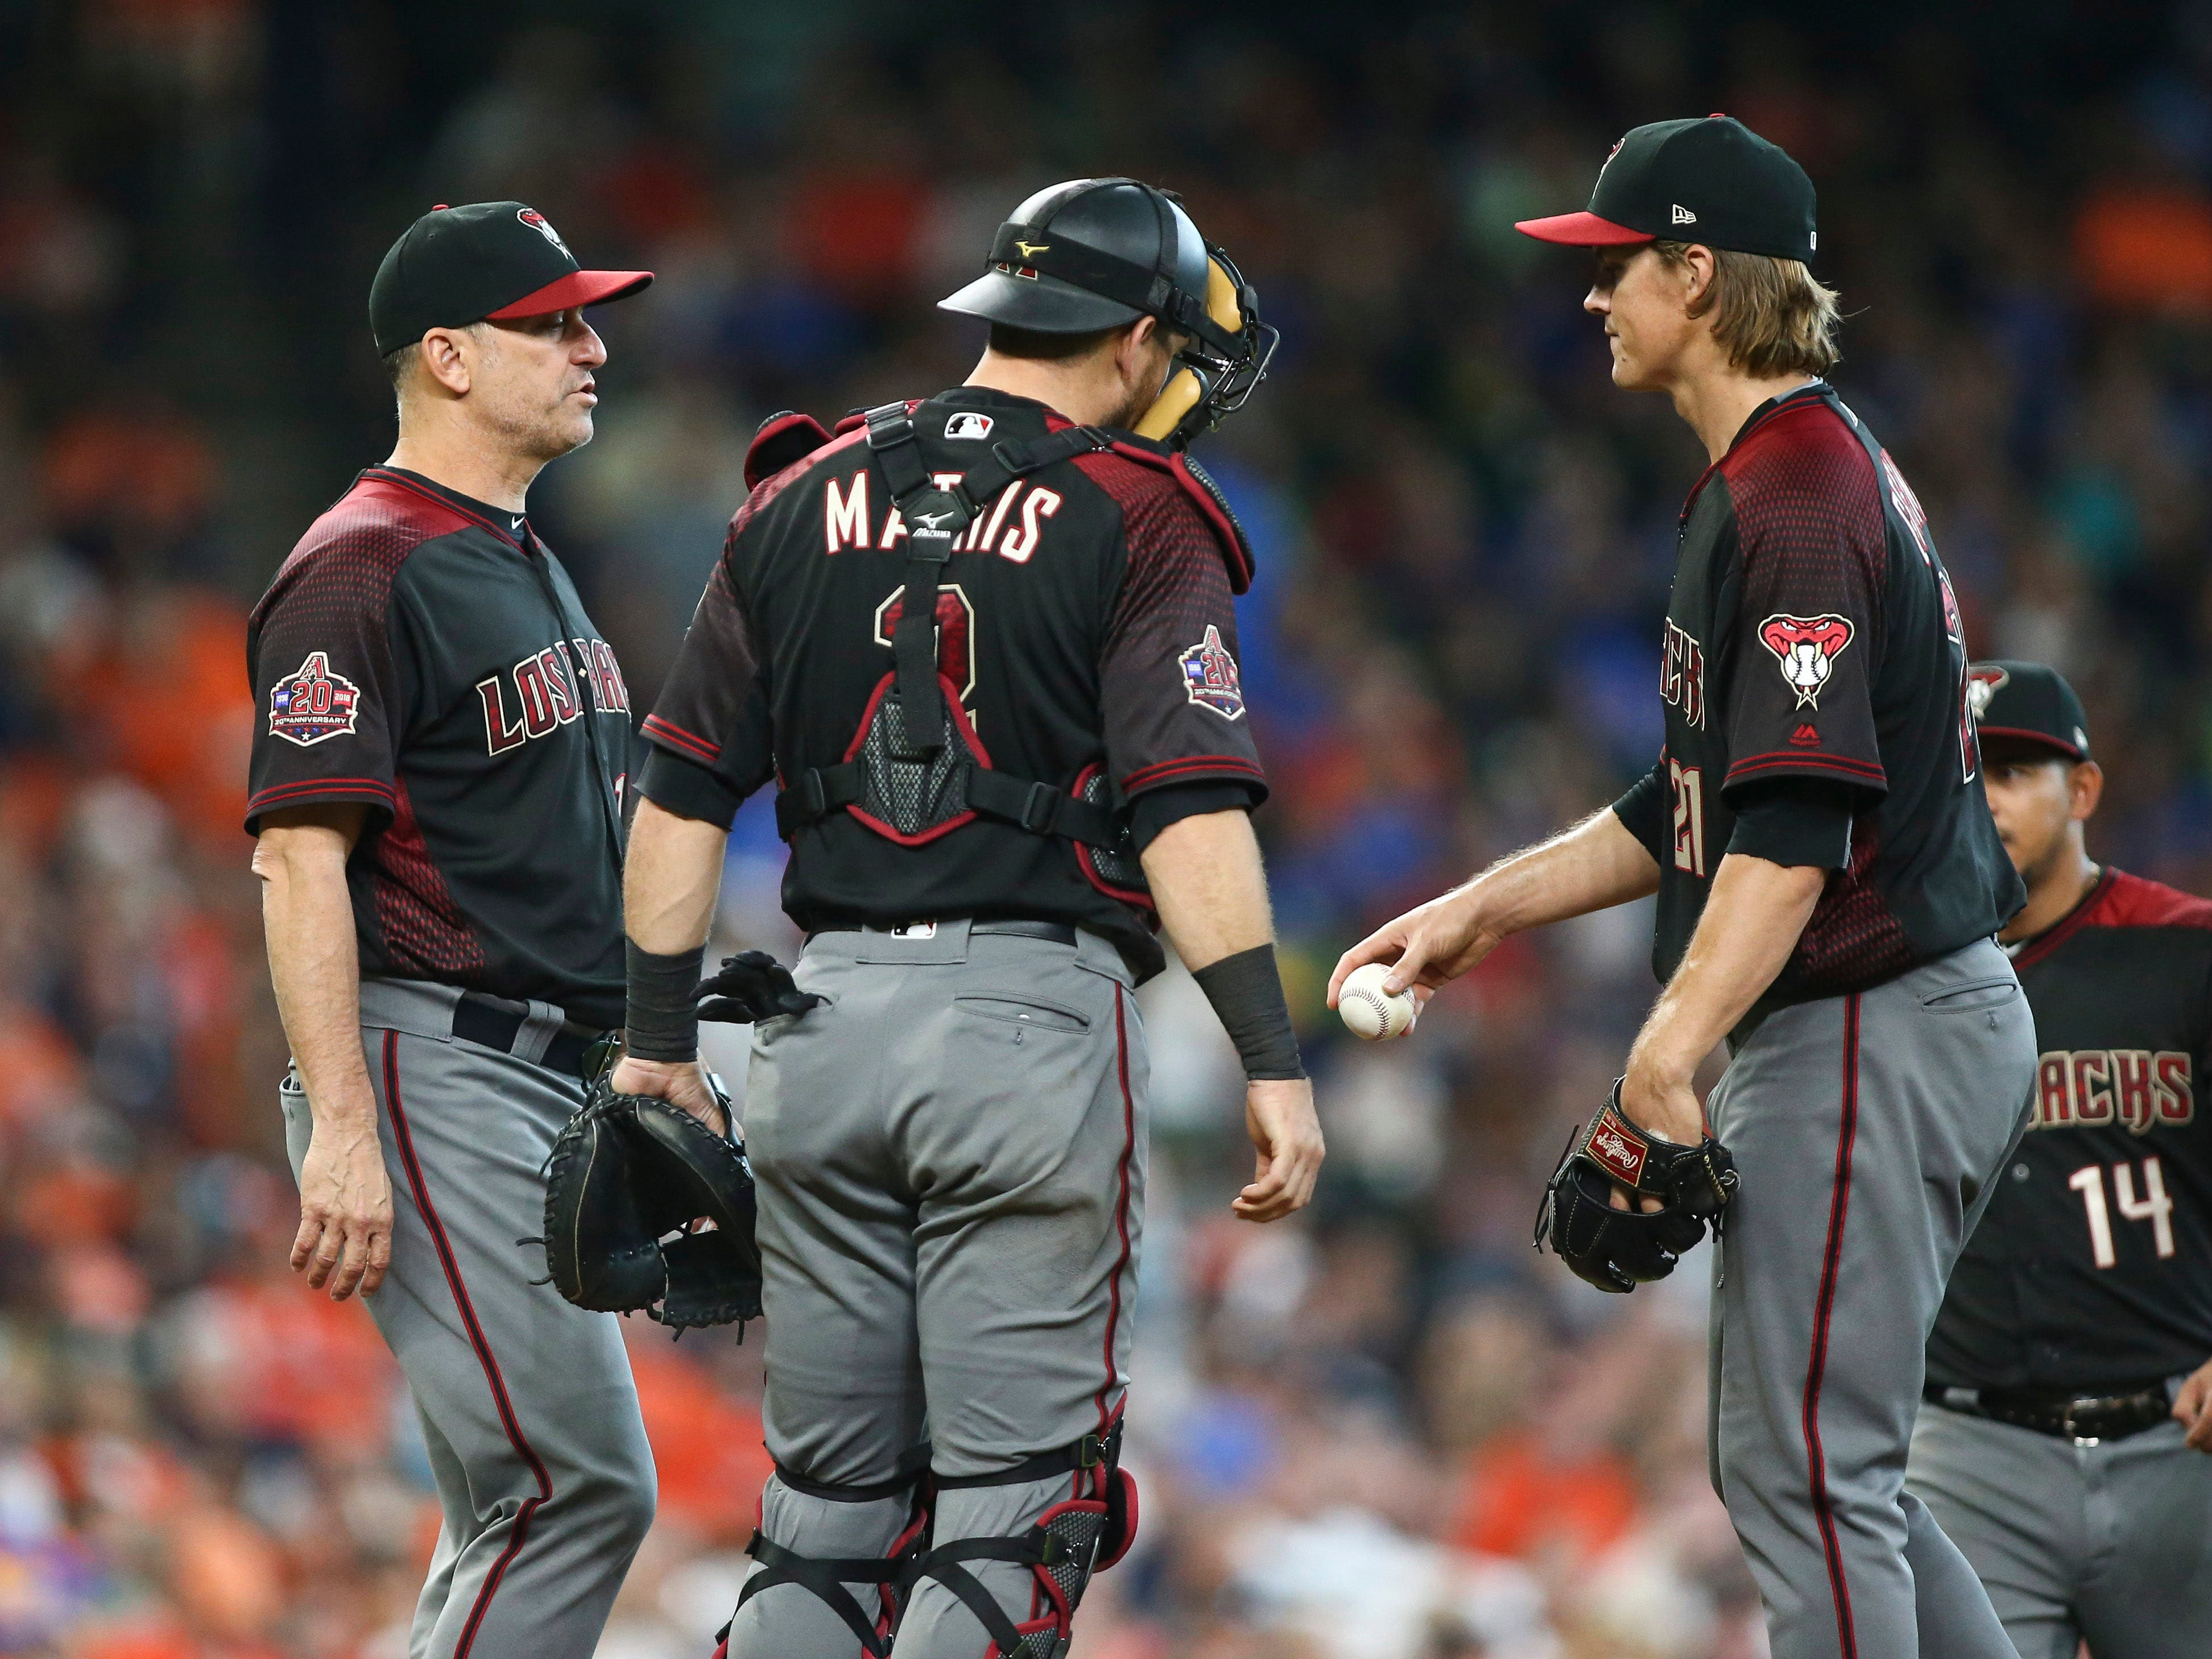 Sep 16, 2018; Houston, TX, USA; Arizona Diamondbacks starting pitcher Zack Greinke (21) gives the ball to manager Torey Lovullo (left) during a pitching change in the seventh inning against the Houston Astros at Minute Maid Park. Mandatory Credit: Troy Taormina-USA TODAY Sports